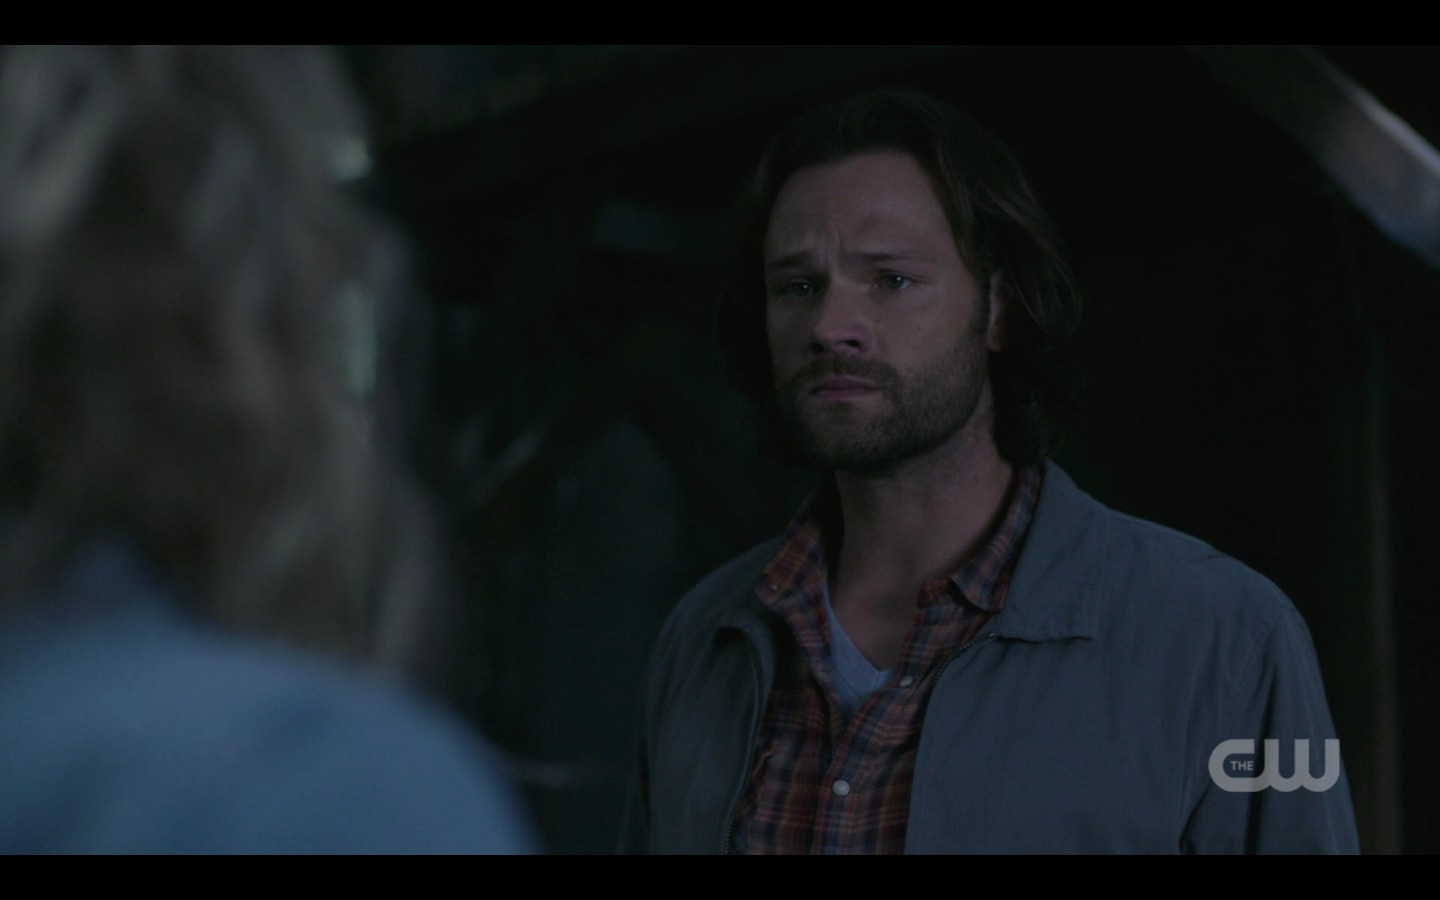 sam looks at mary teary as hunters win spn fight